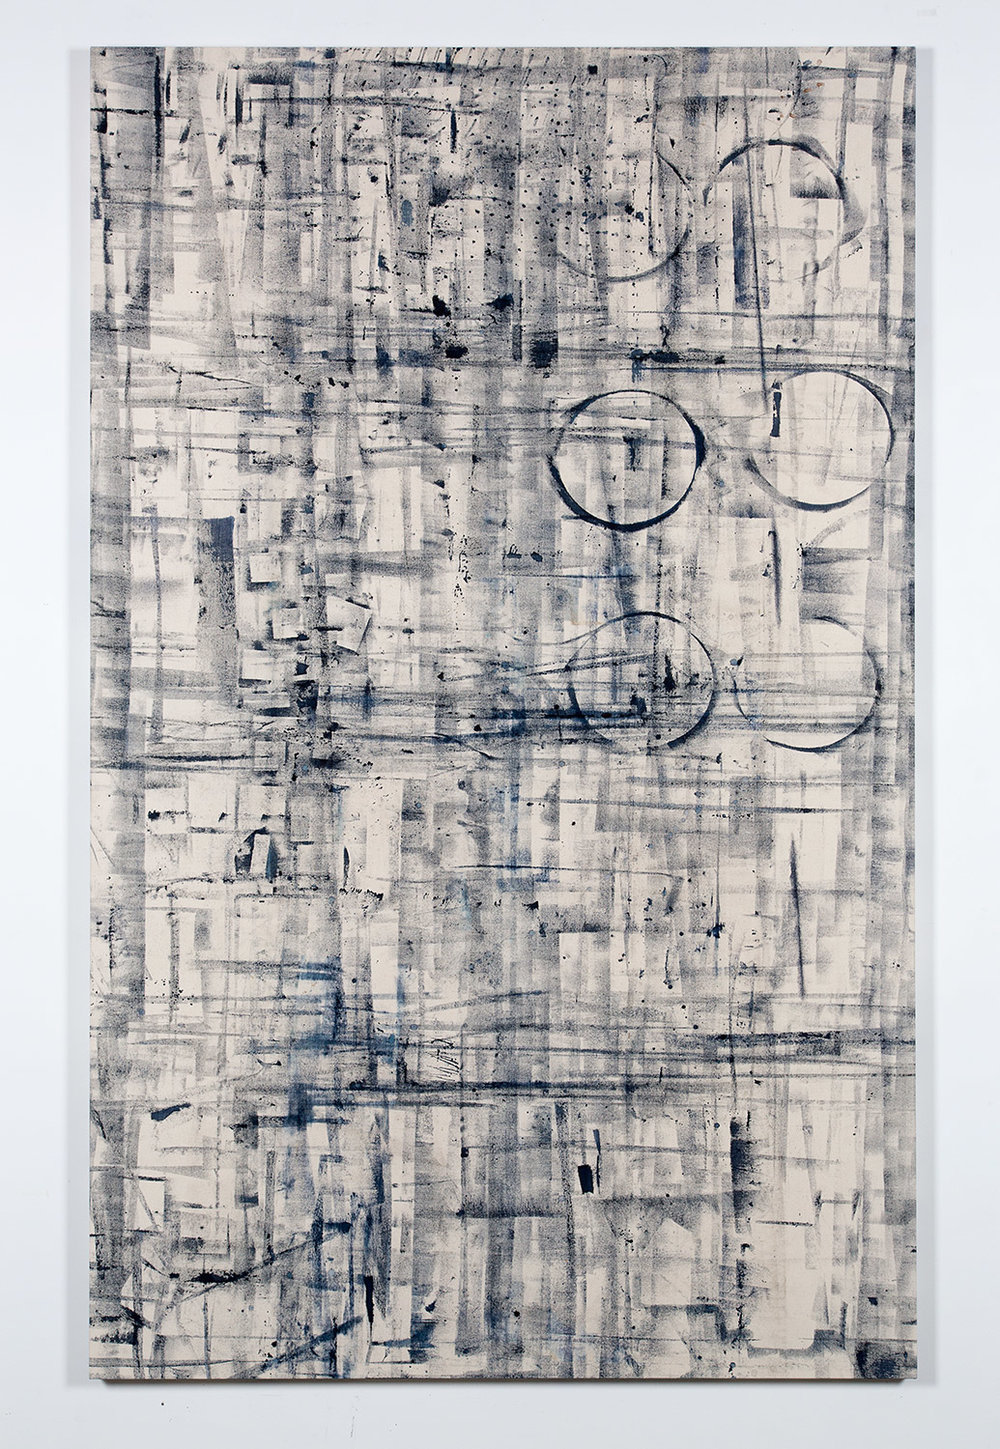 Marginalis (Los Angeles, California, May 1–August 1, 2014)   2014  Cyanotype chemistry on canvas  89 x 55 inches   Cyanotype Paintings, 2013–2015    Marginalia, 2014